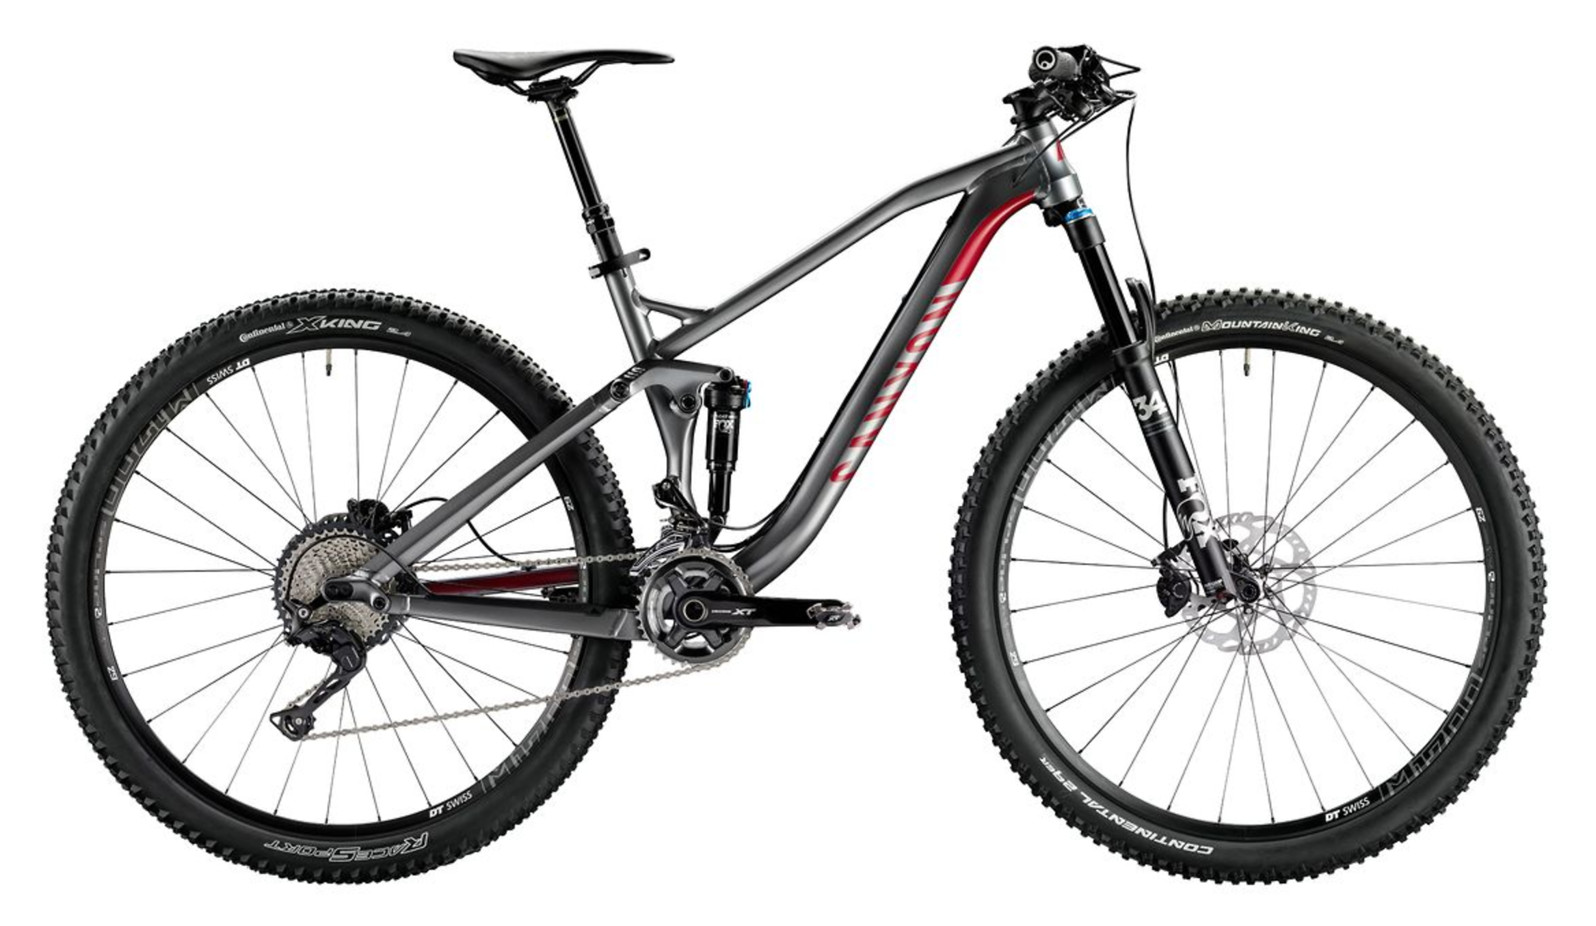 2017 Canyon Neuron AL 8.9 Bike